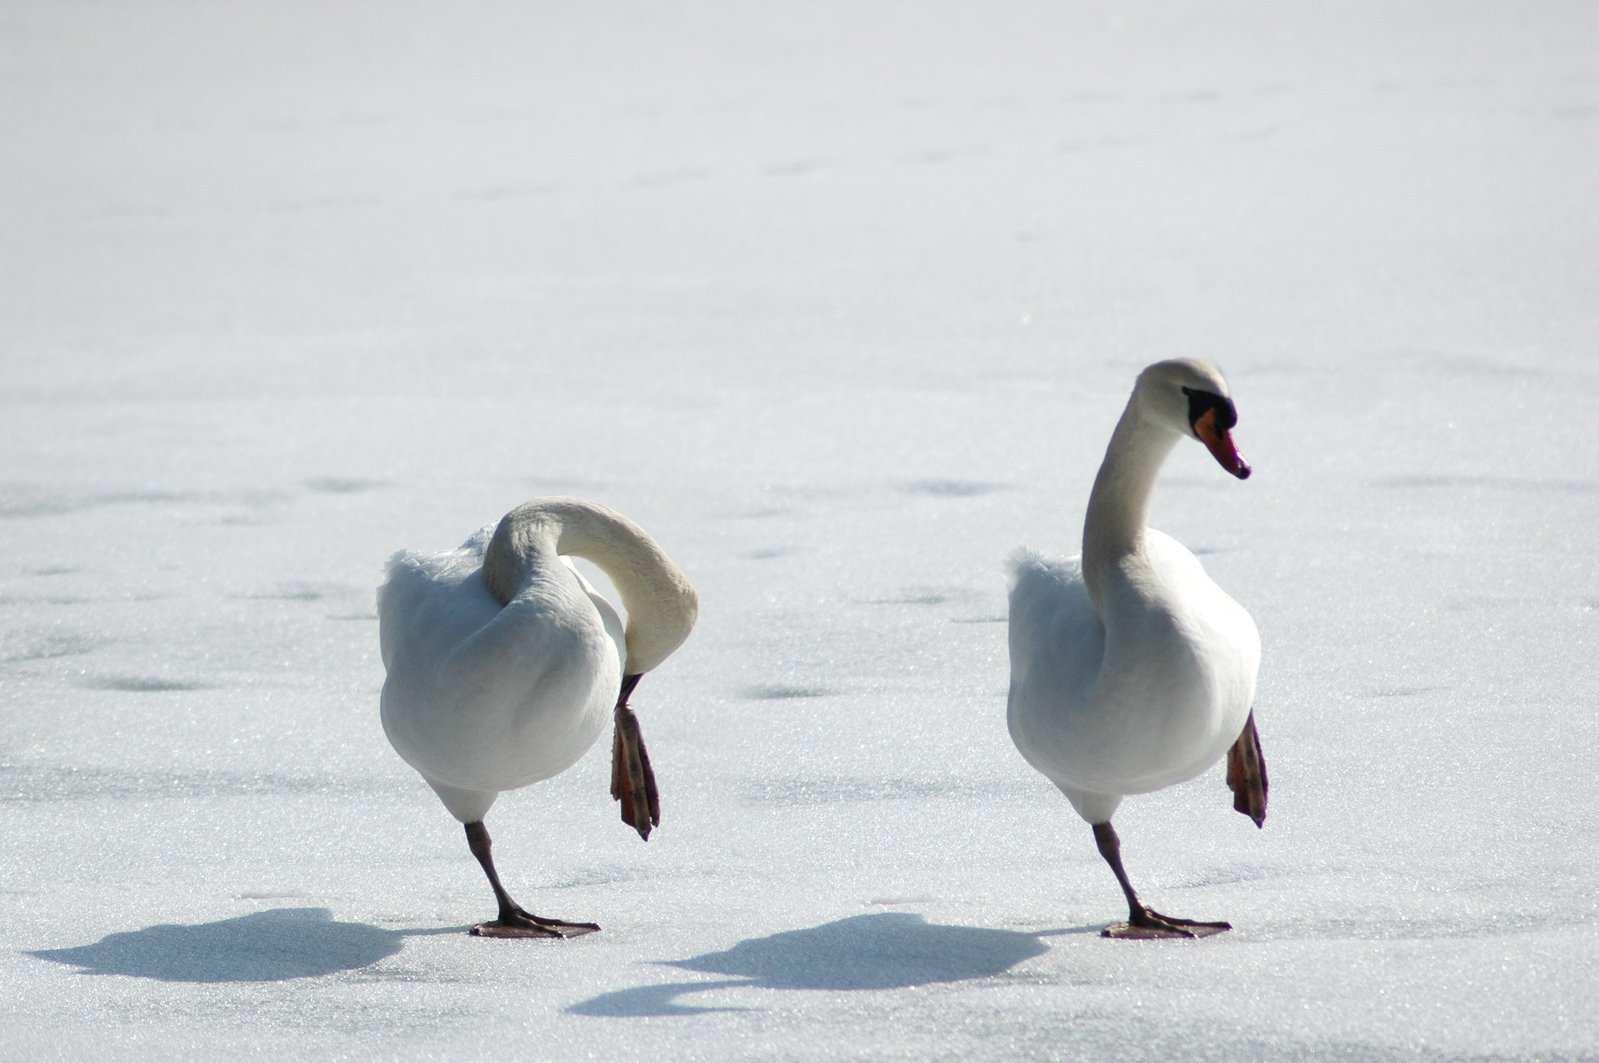 Standing on thin ice